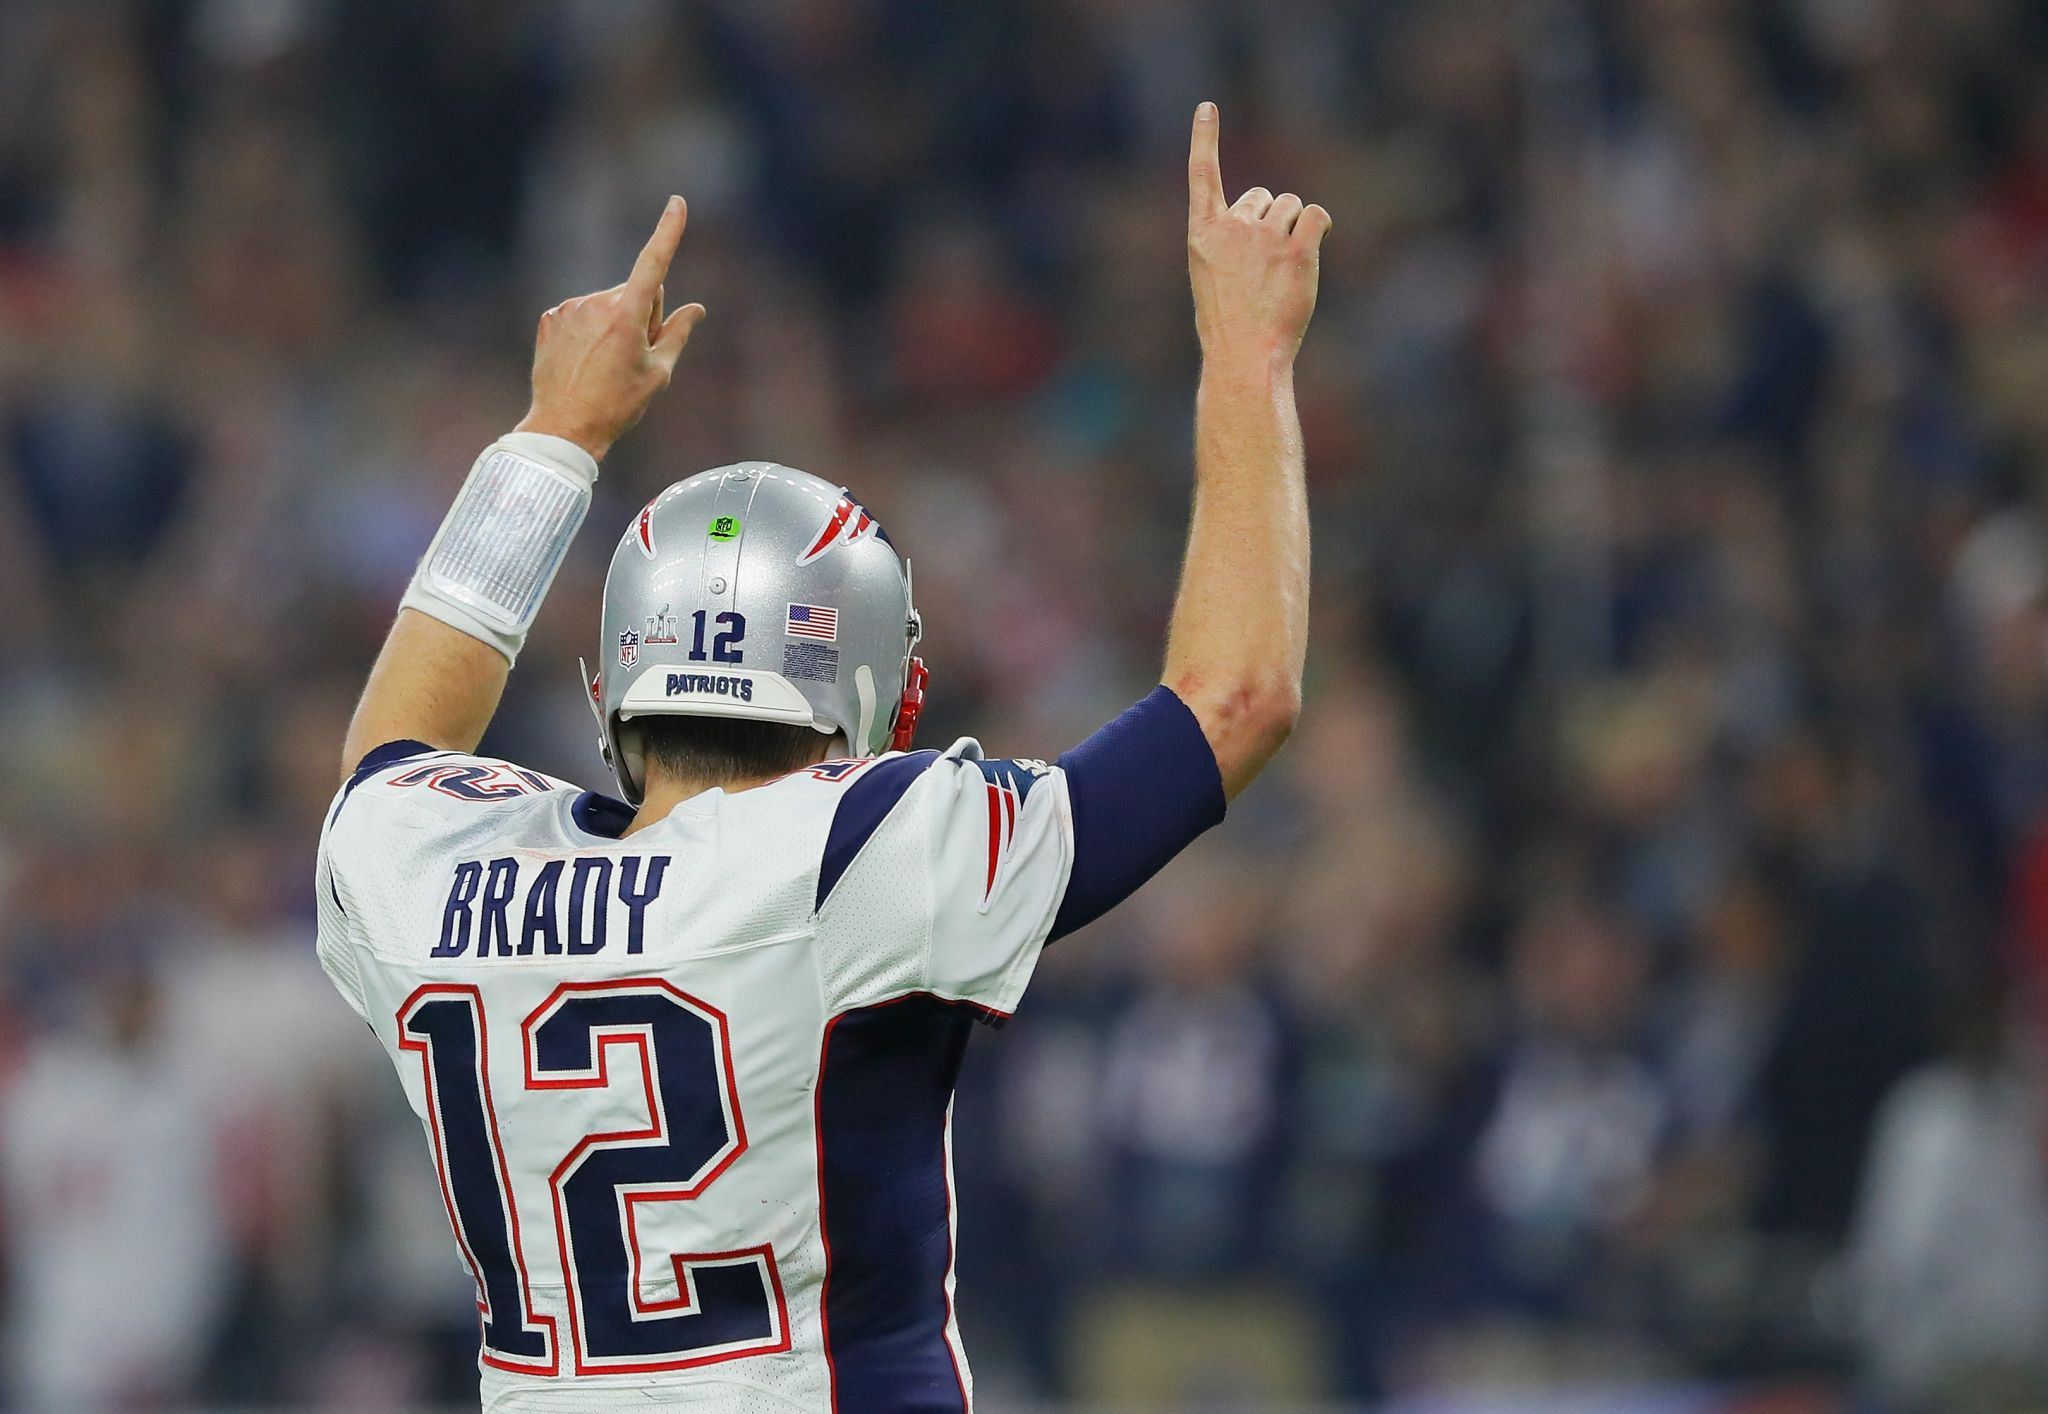 The theft of Tom Brady's jersey after Super Bowl LI in Houston has ...